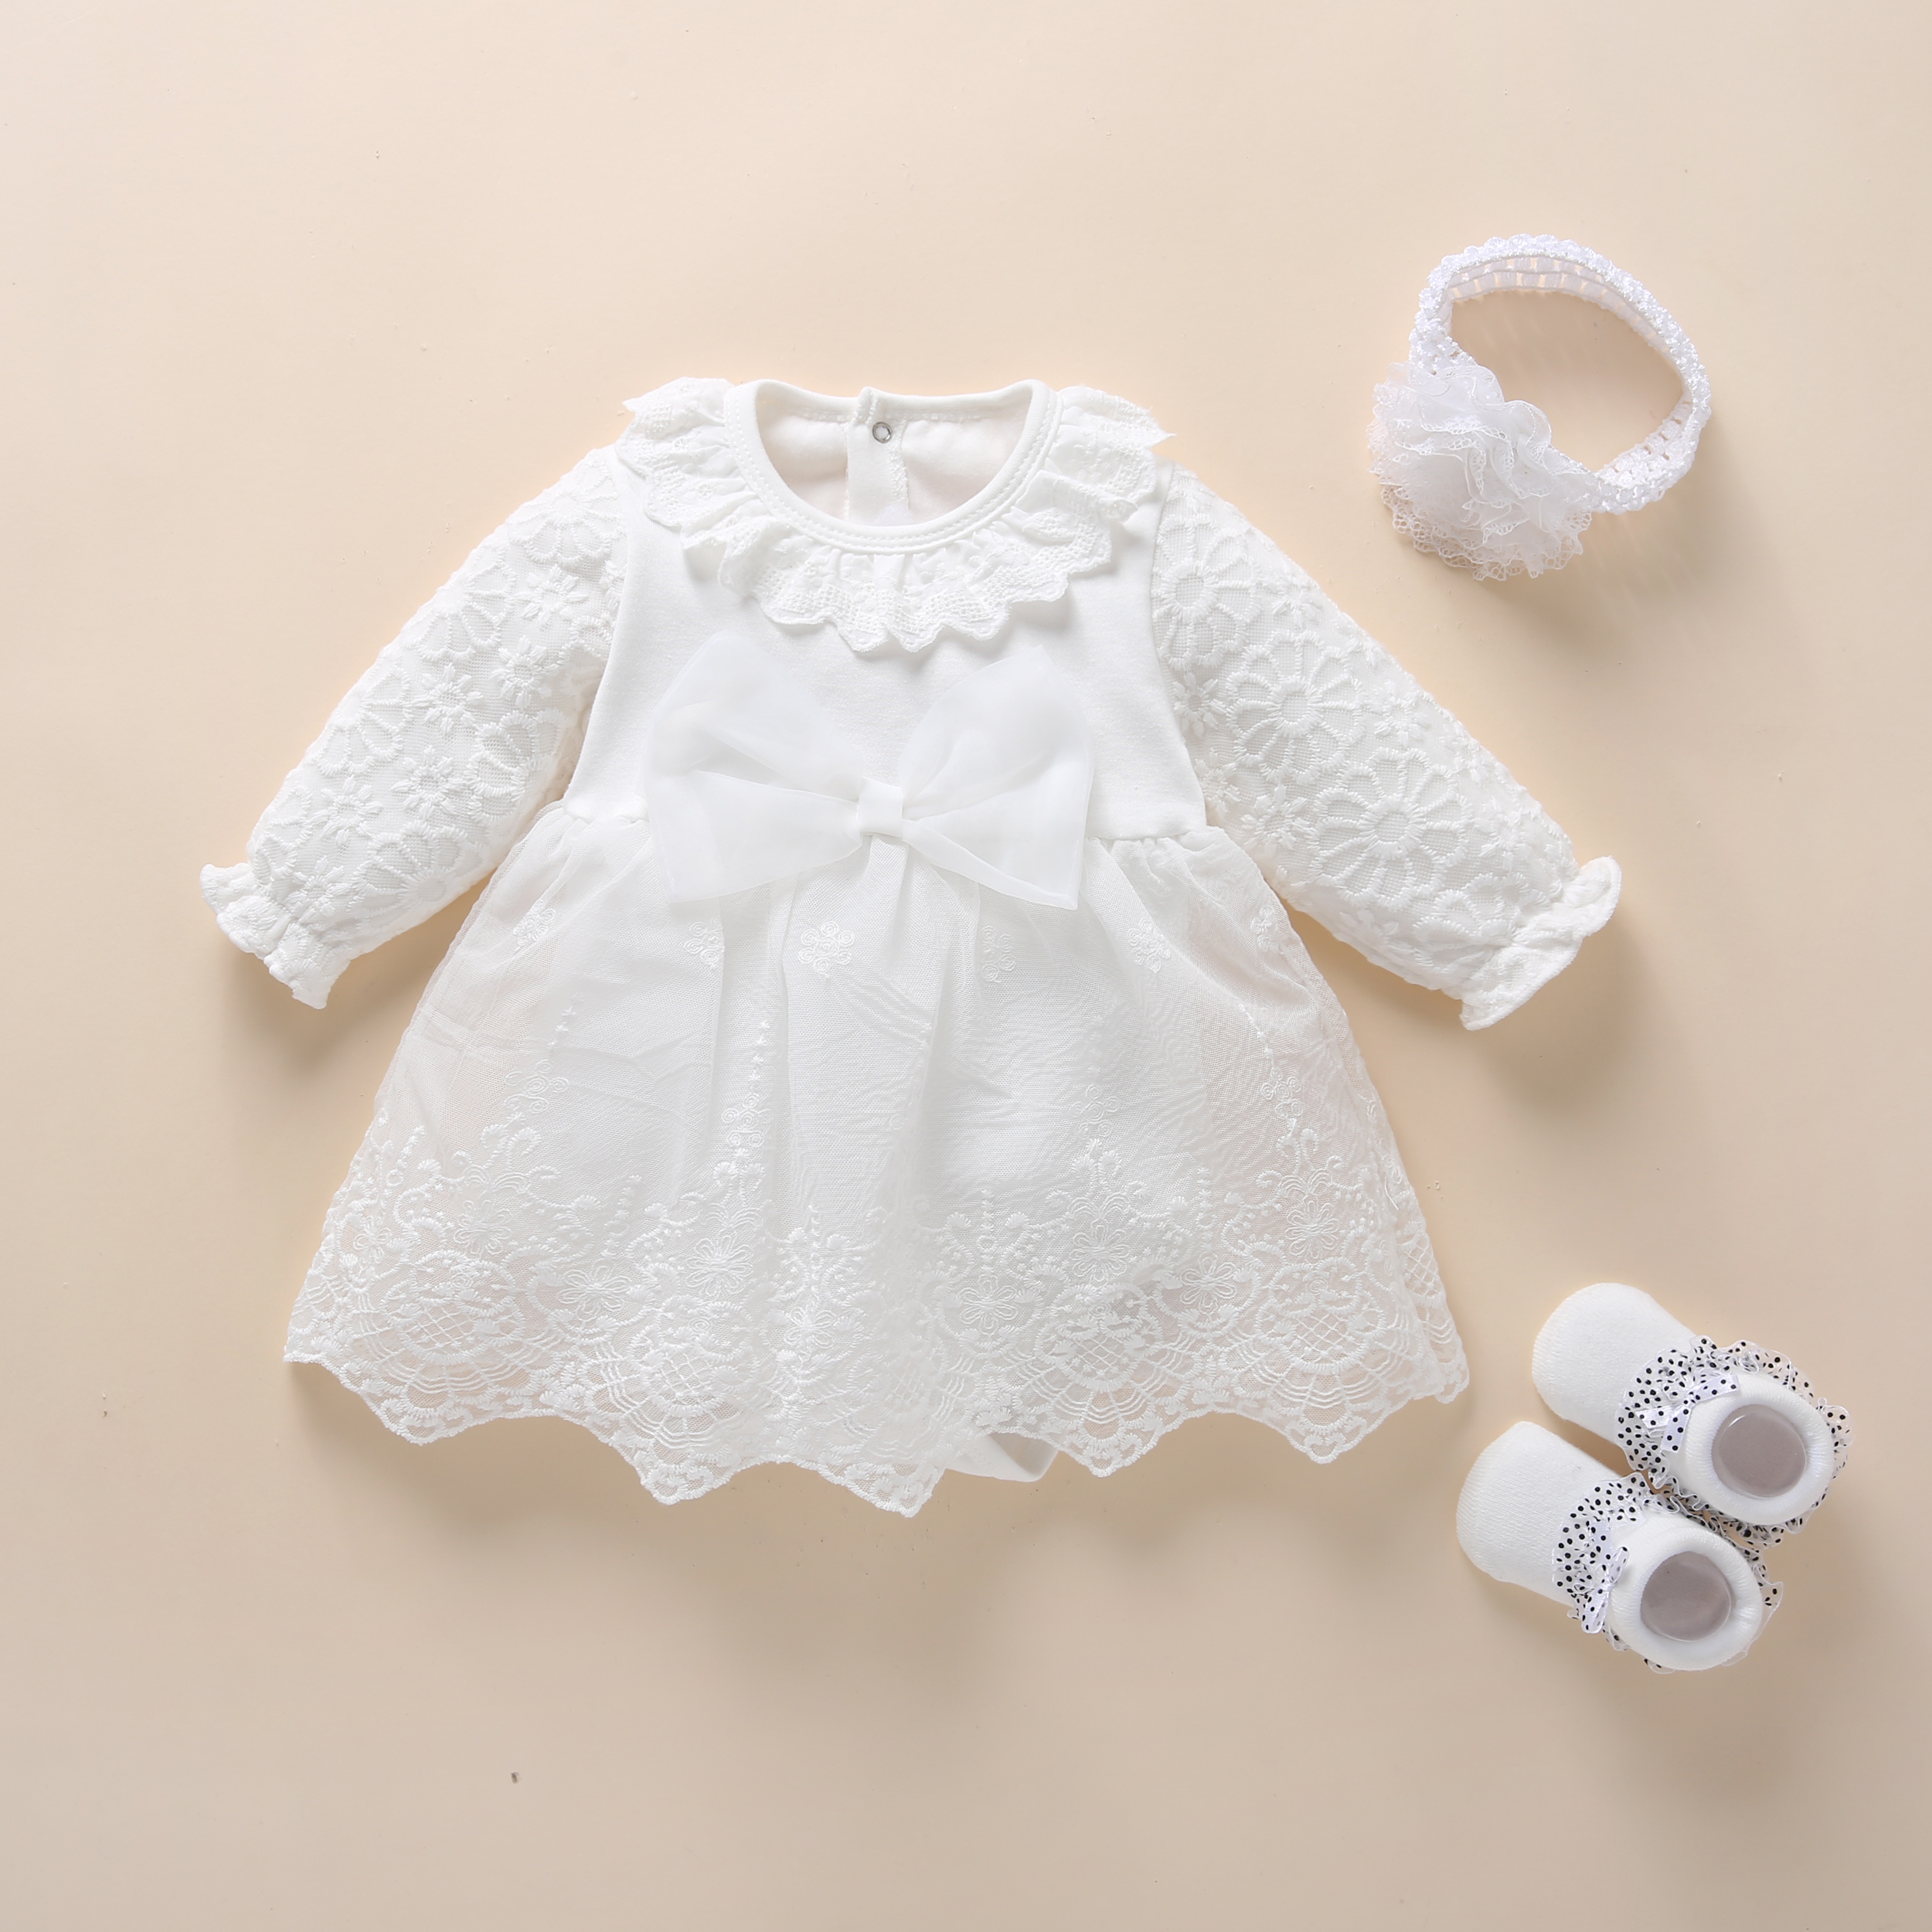 Baby Baptism Dress 2019 Bow Newborn Baby Girls Infant Dresses & Clothes Snow White Baby Dress 1 Year Old Birthday Girl Dress